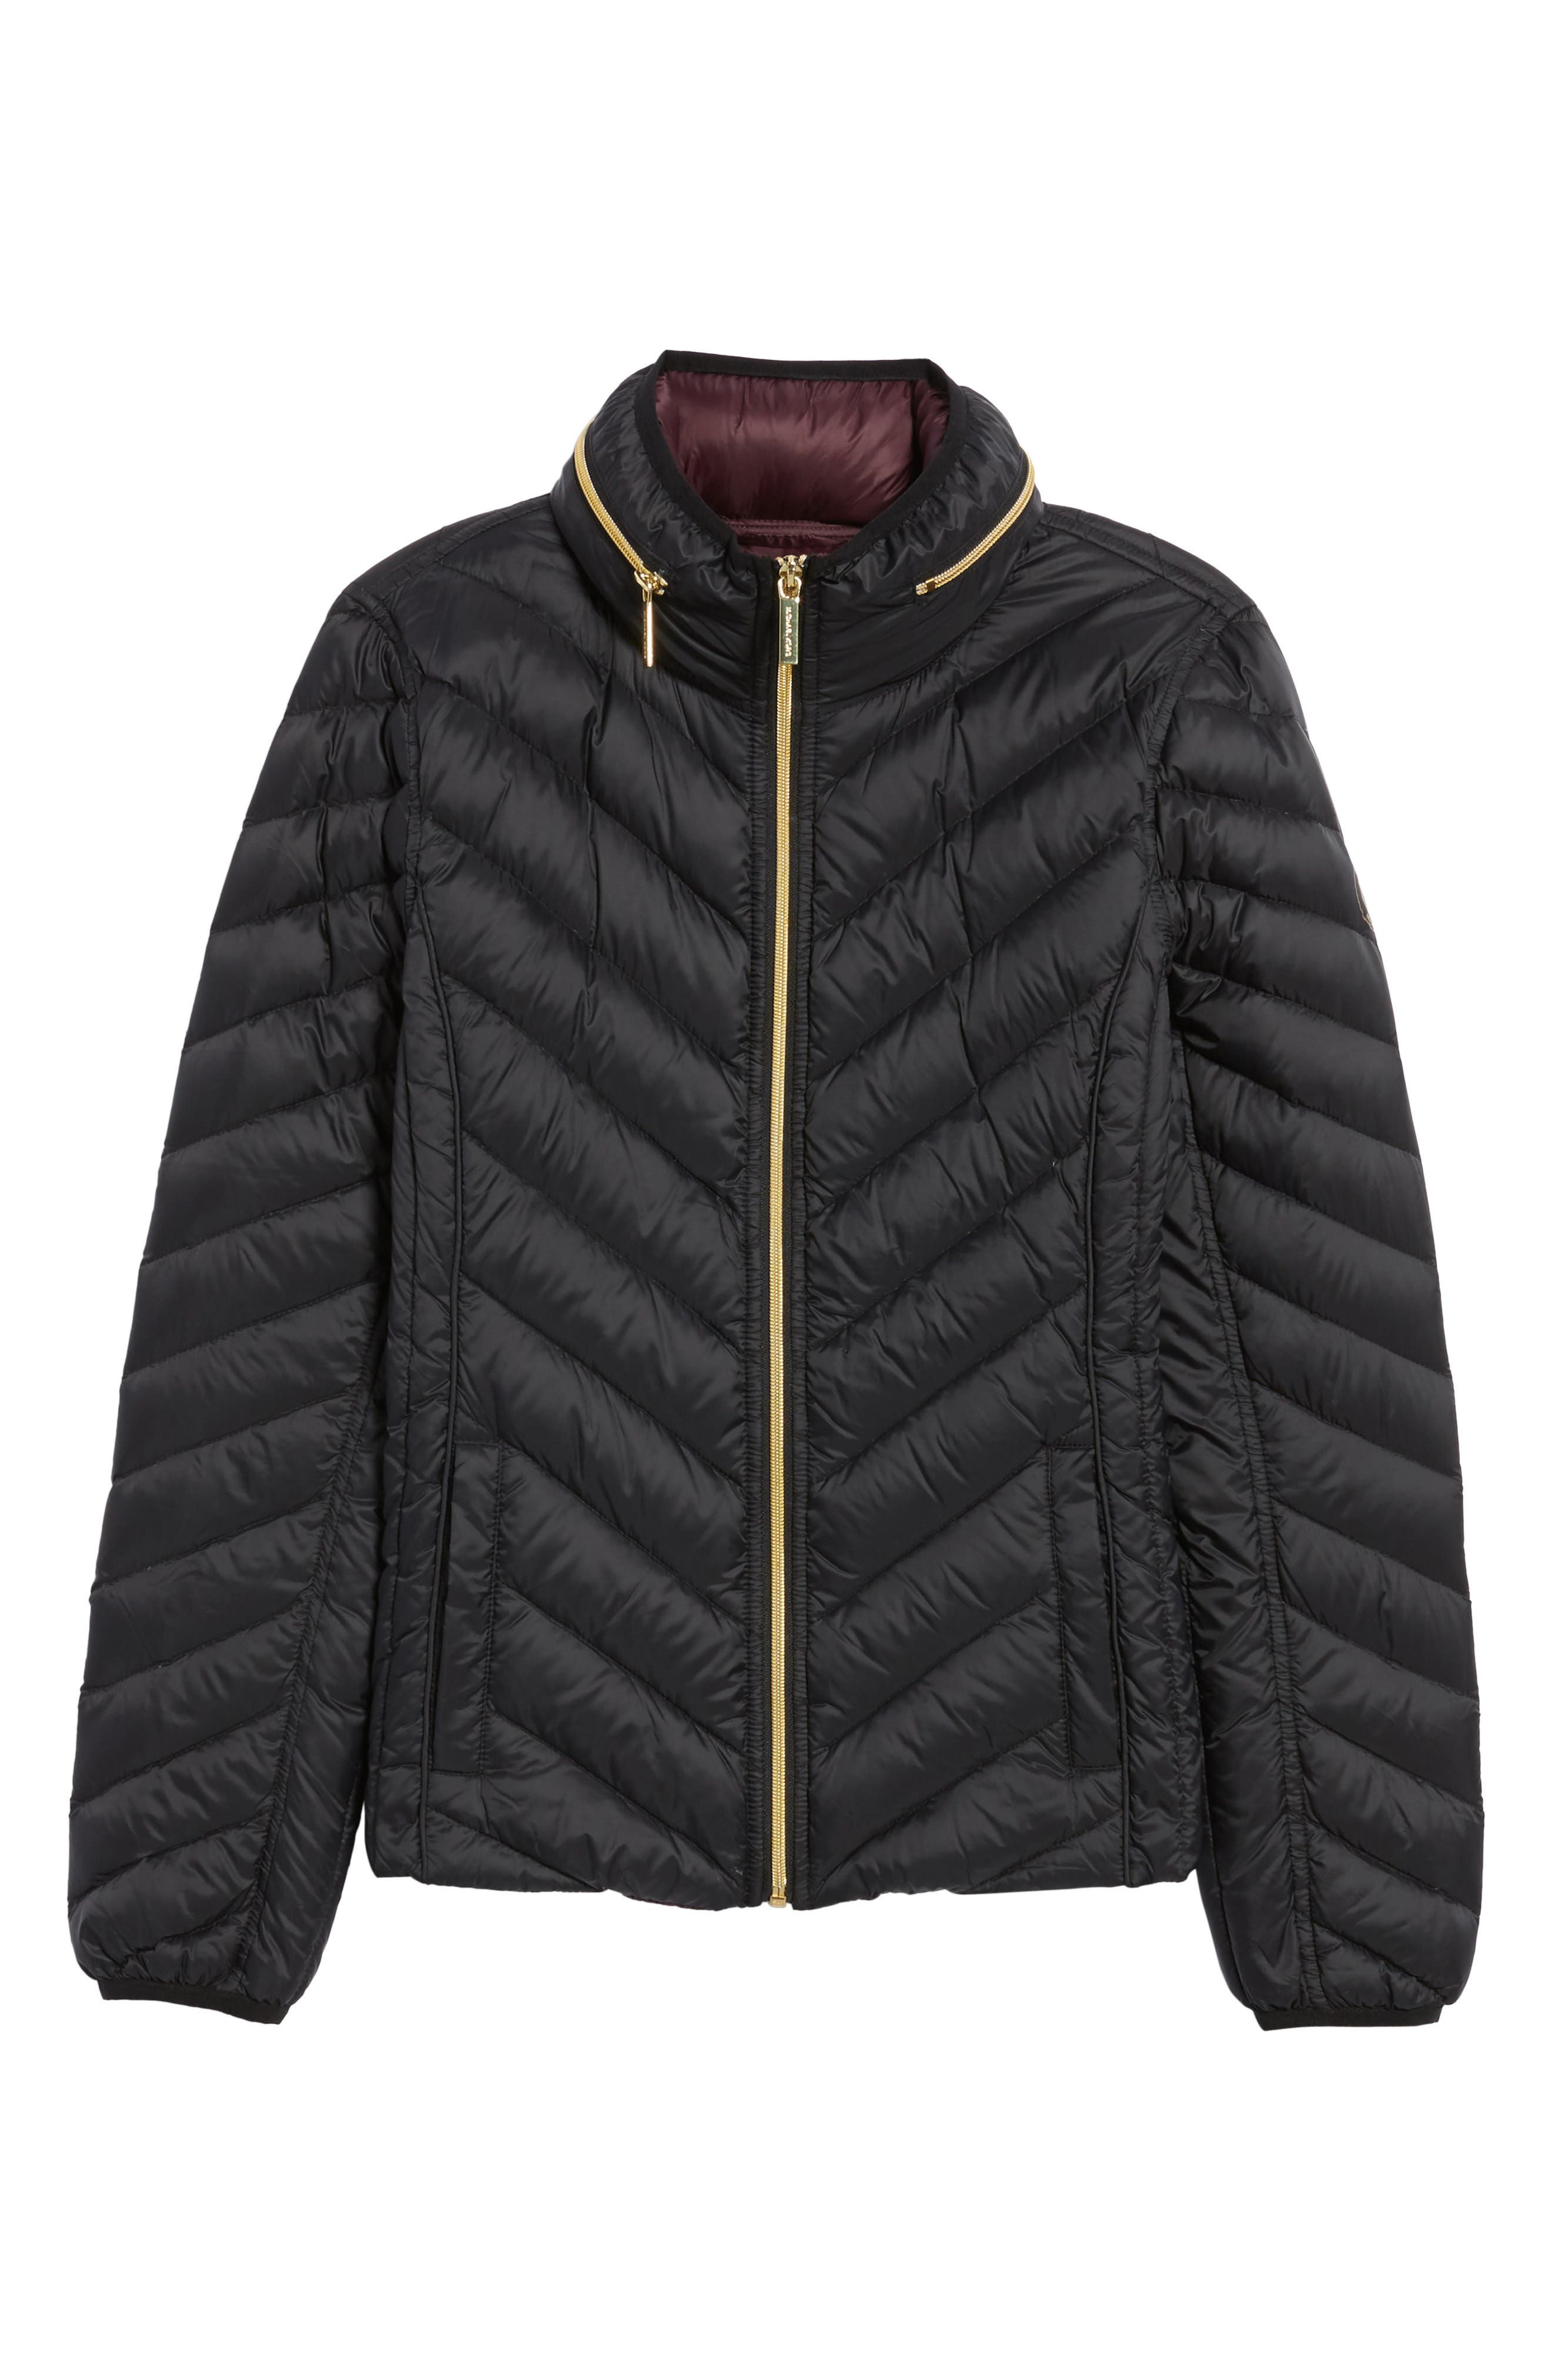 Chevron Quilted Packable Down Puffer Jacket with Stowaway Hood,                             Alternate thumbnail 5, color,                             001